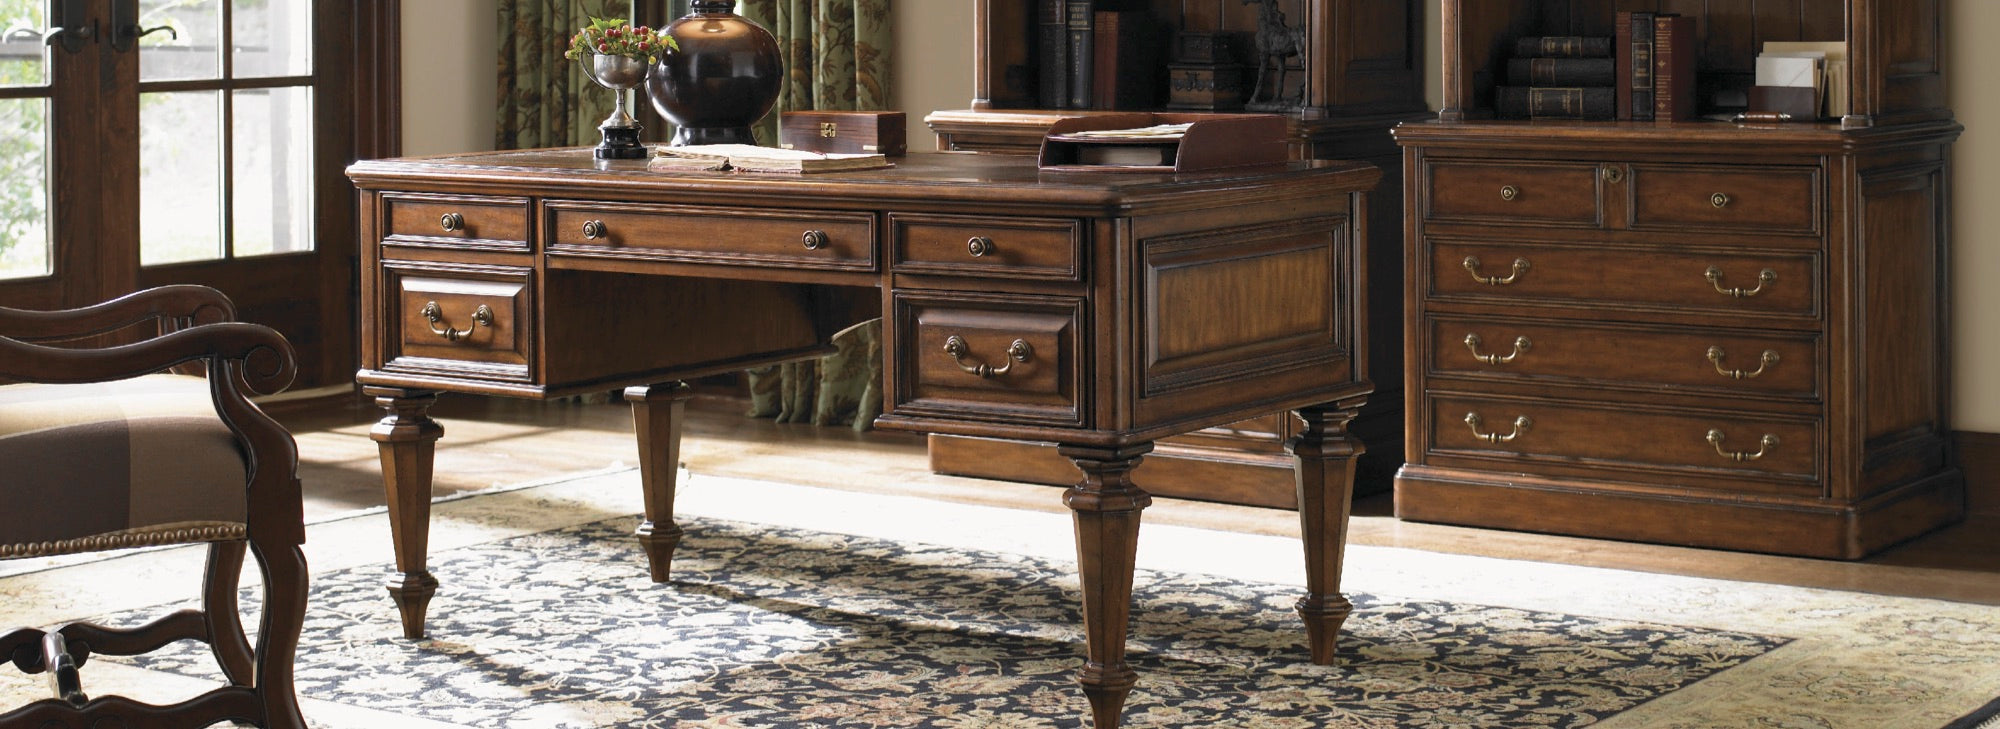 Home  Home Office  Desks. Home Office Furniture   Willis Furniture   Virginia Beach